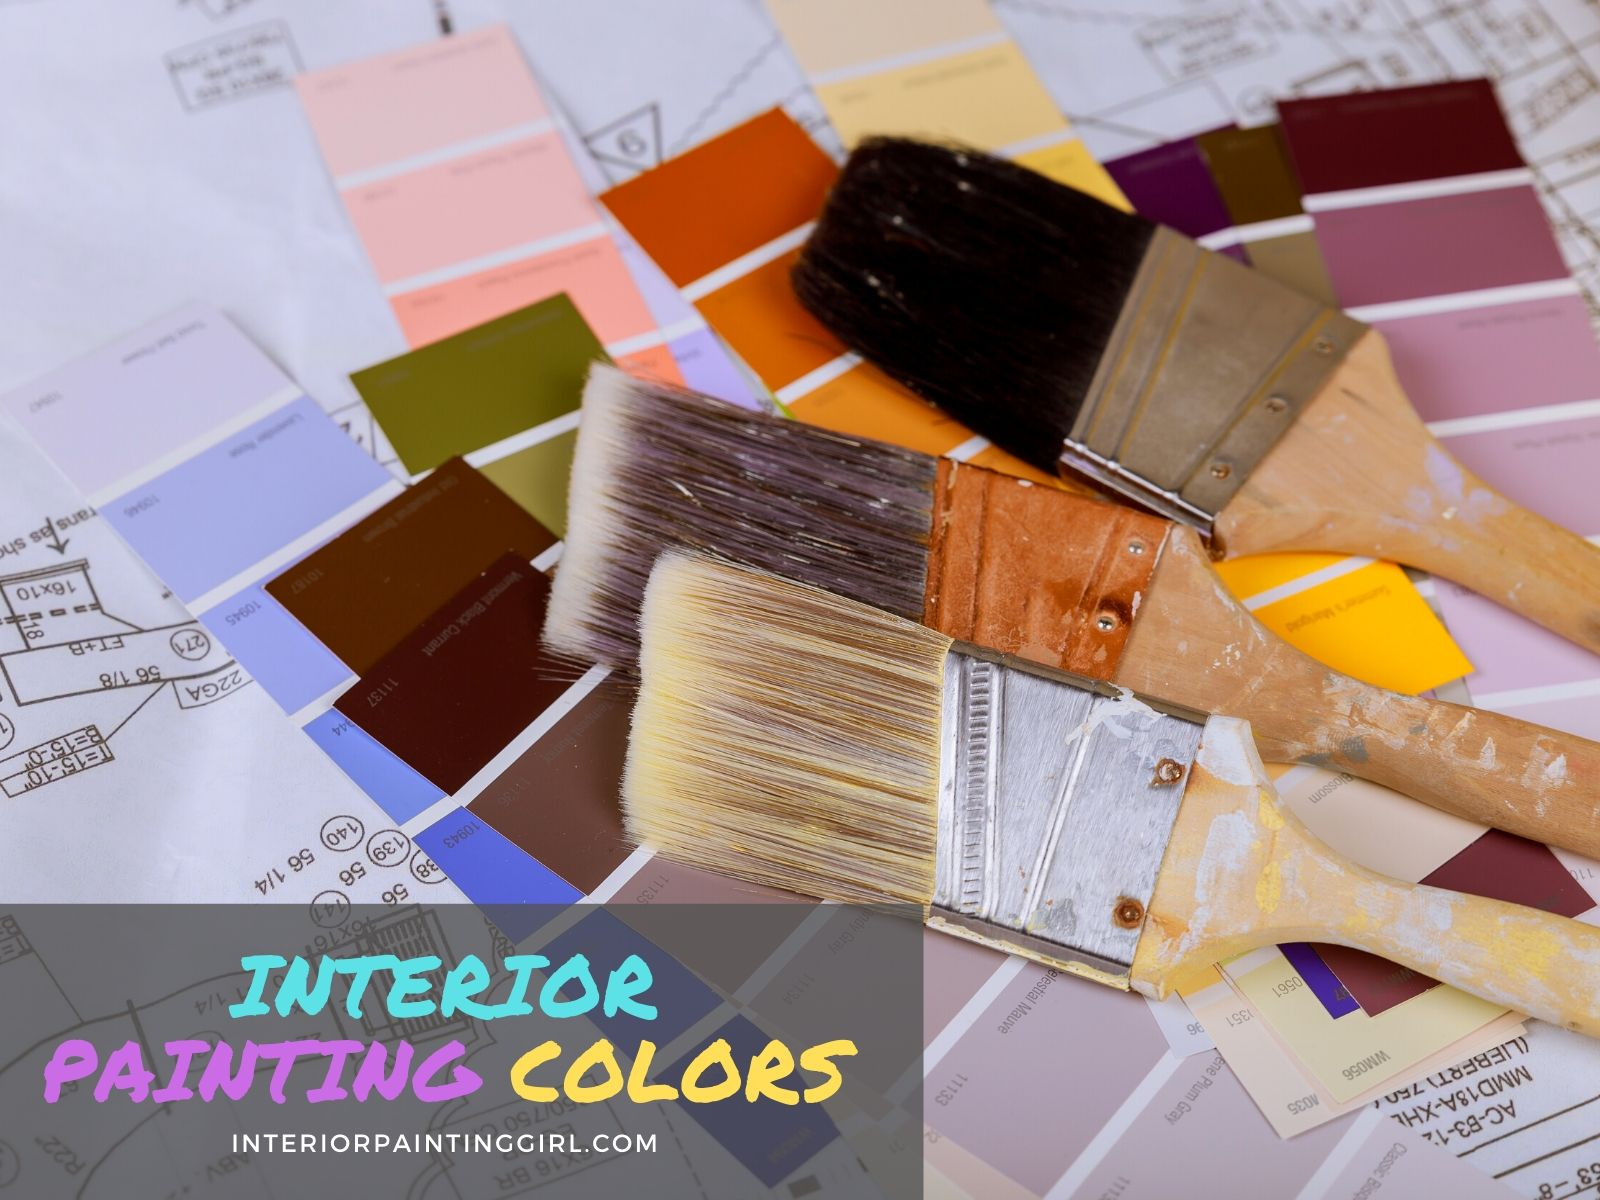 Get help choosing your interior painting colors from That Interior Painting Girl!